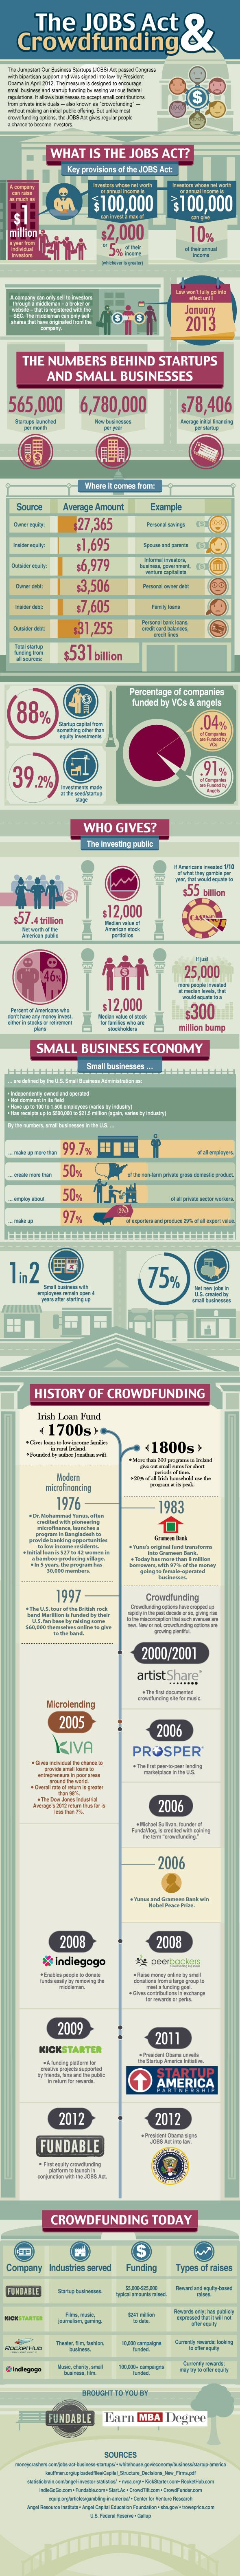 The JOBS Act: What Startups and Small Businesses Need to Know [Infographic] - Forbes